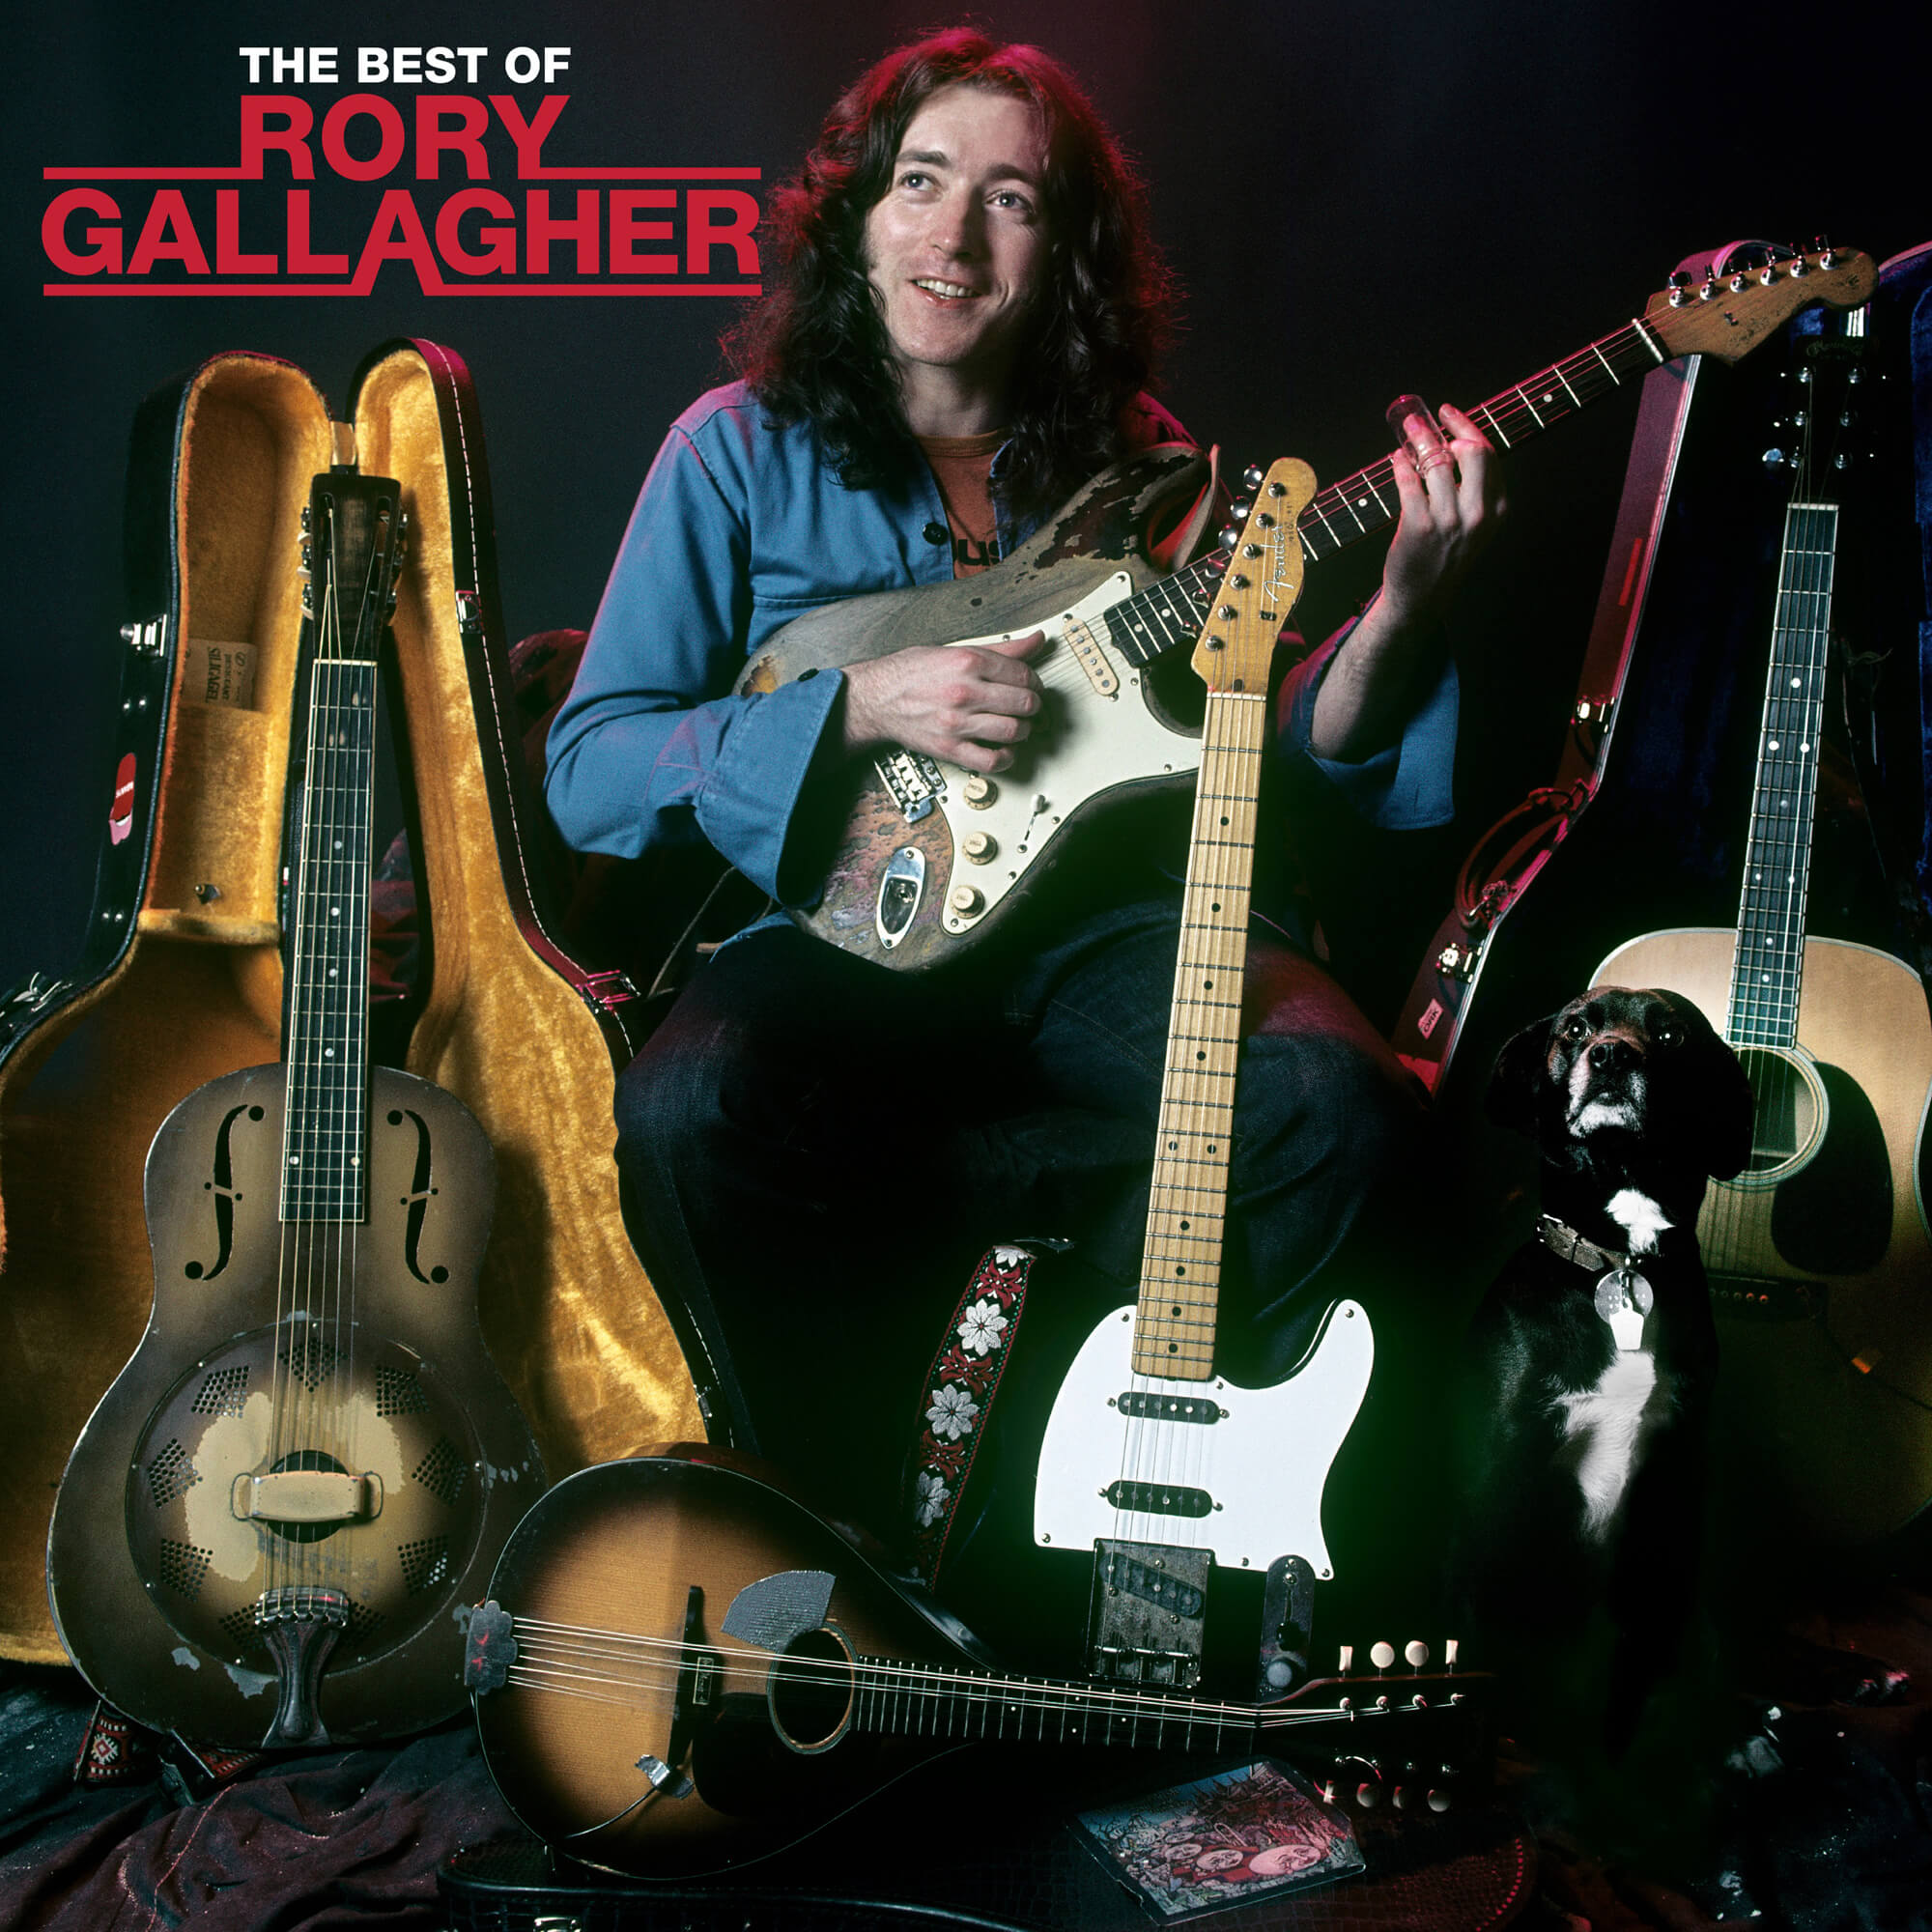 Rory Gallagher - The Best Of, (I Can't Get No) Satisfaction (feat. Jerry Lee Lewis)